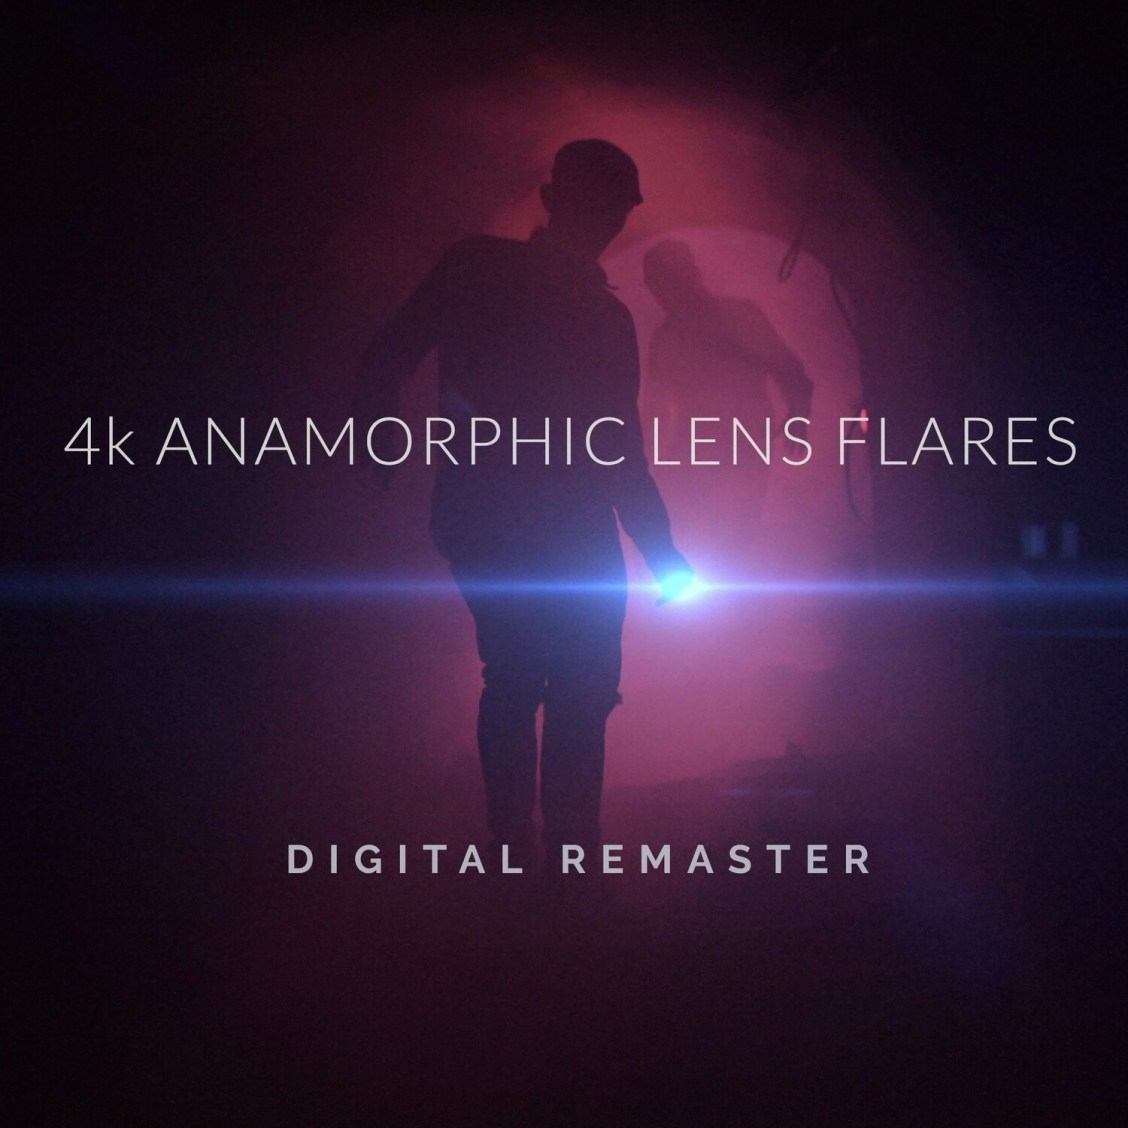 Free Colorist Factory Digital Remaster 4K Anamorphic Lens Flares